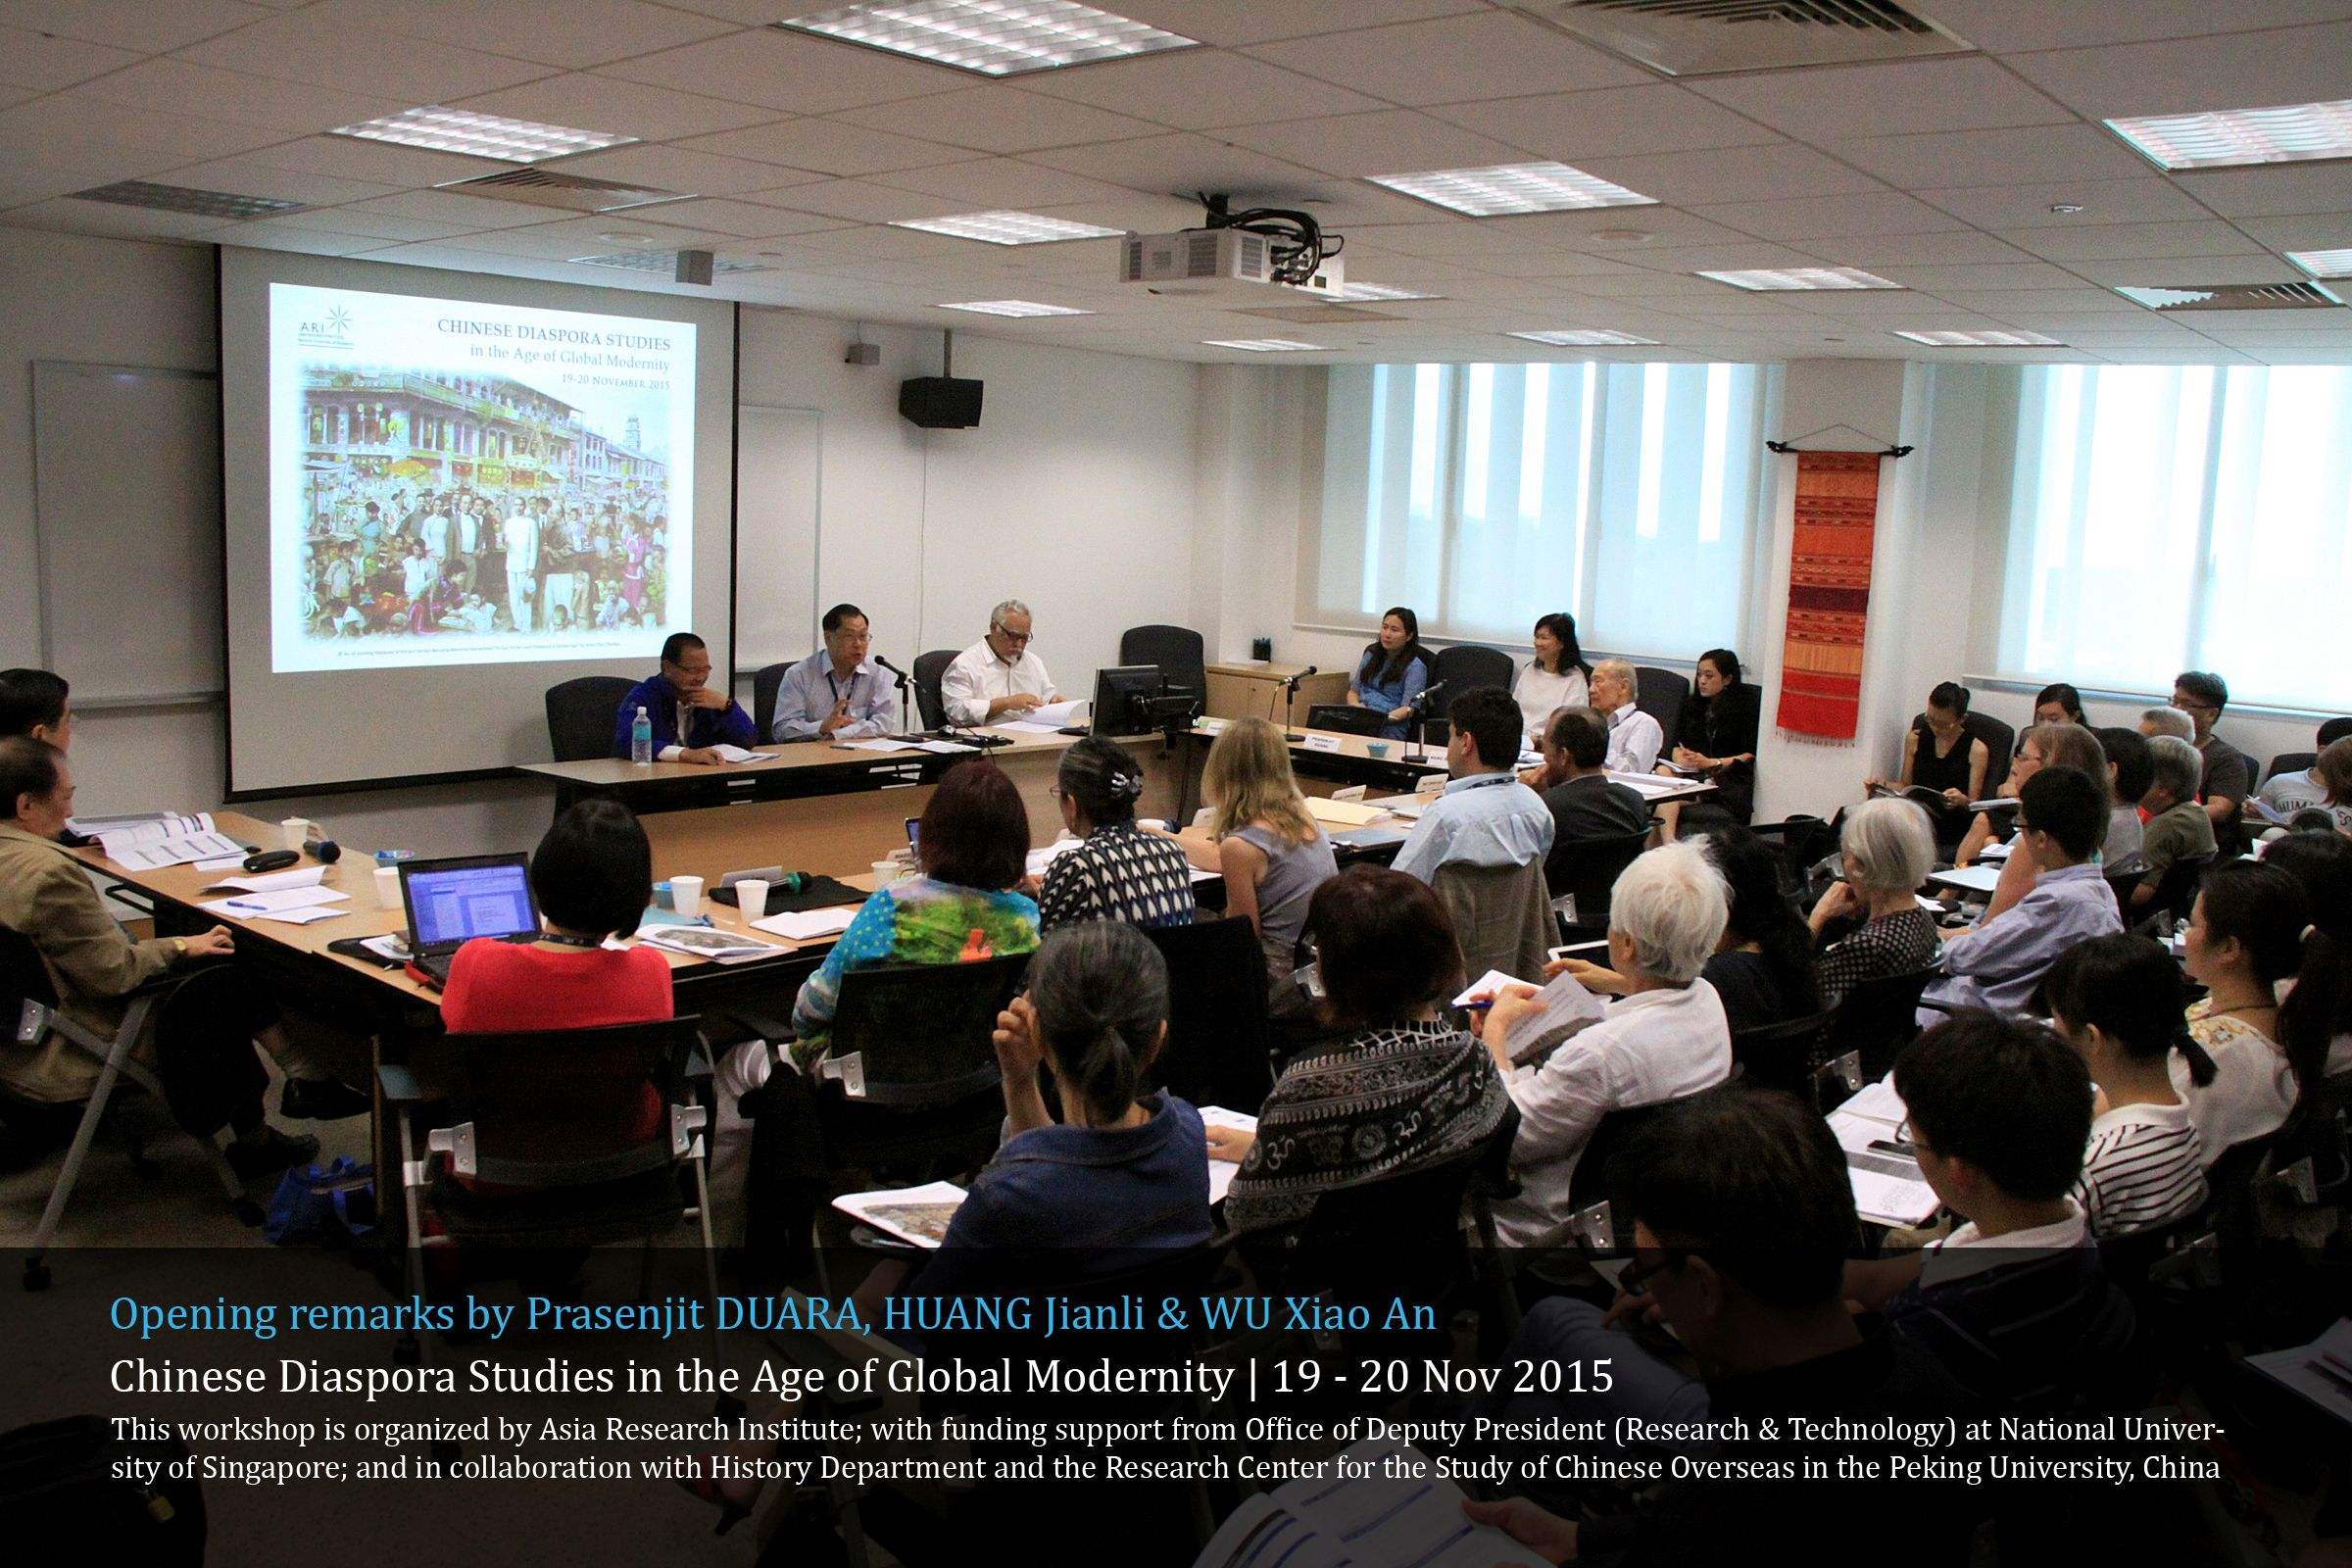 Chinese Diaspora Studies in the Age of Global Modernity